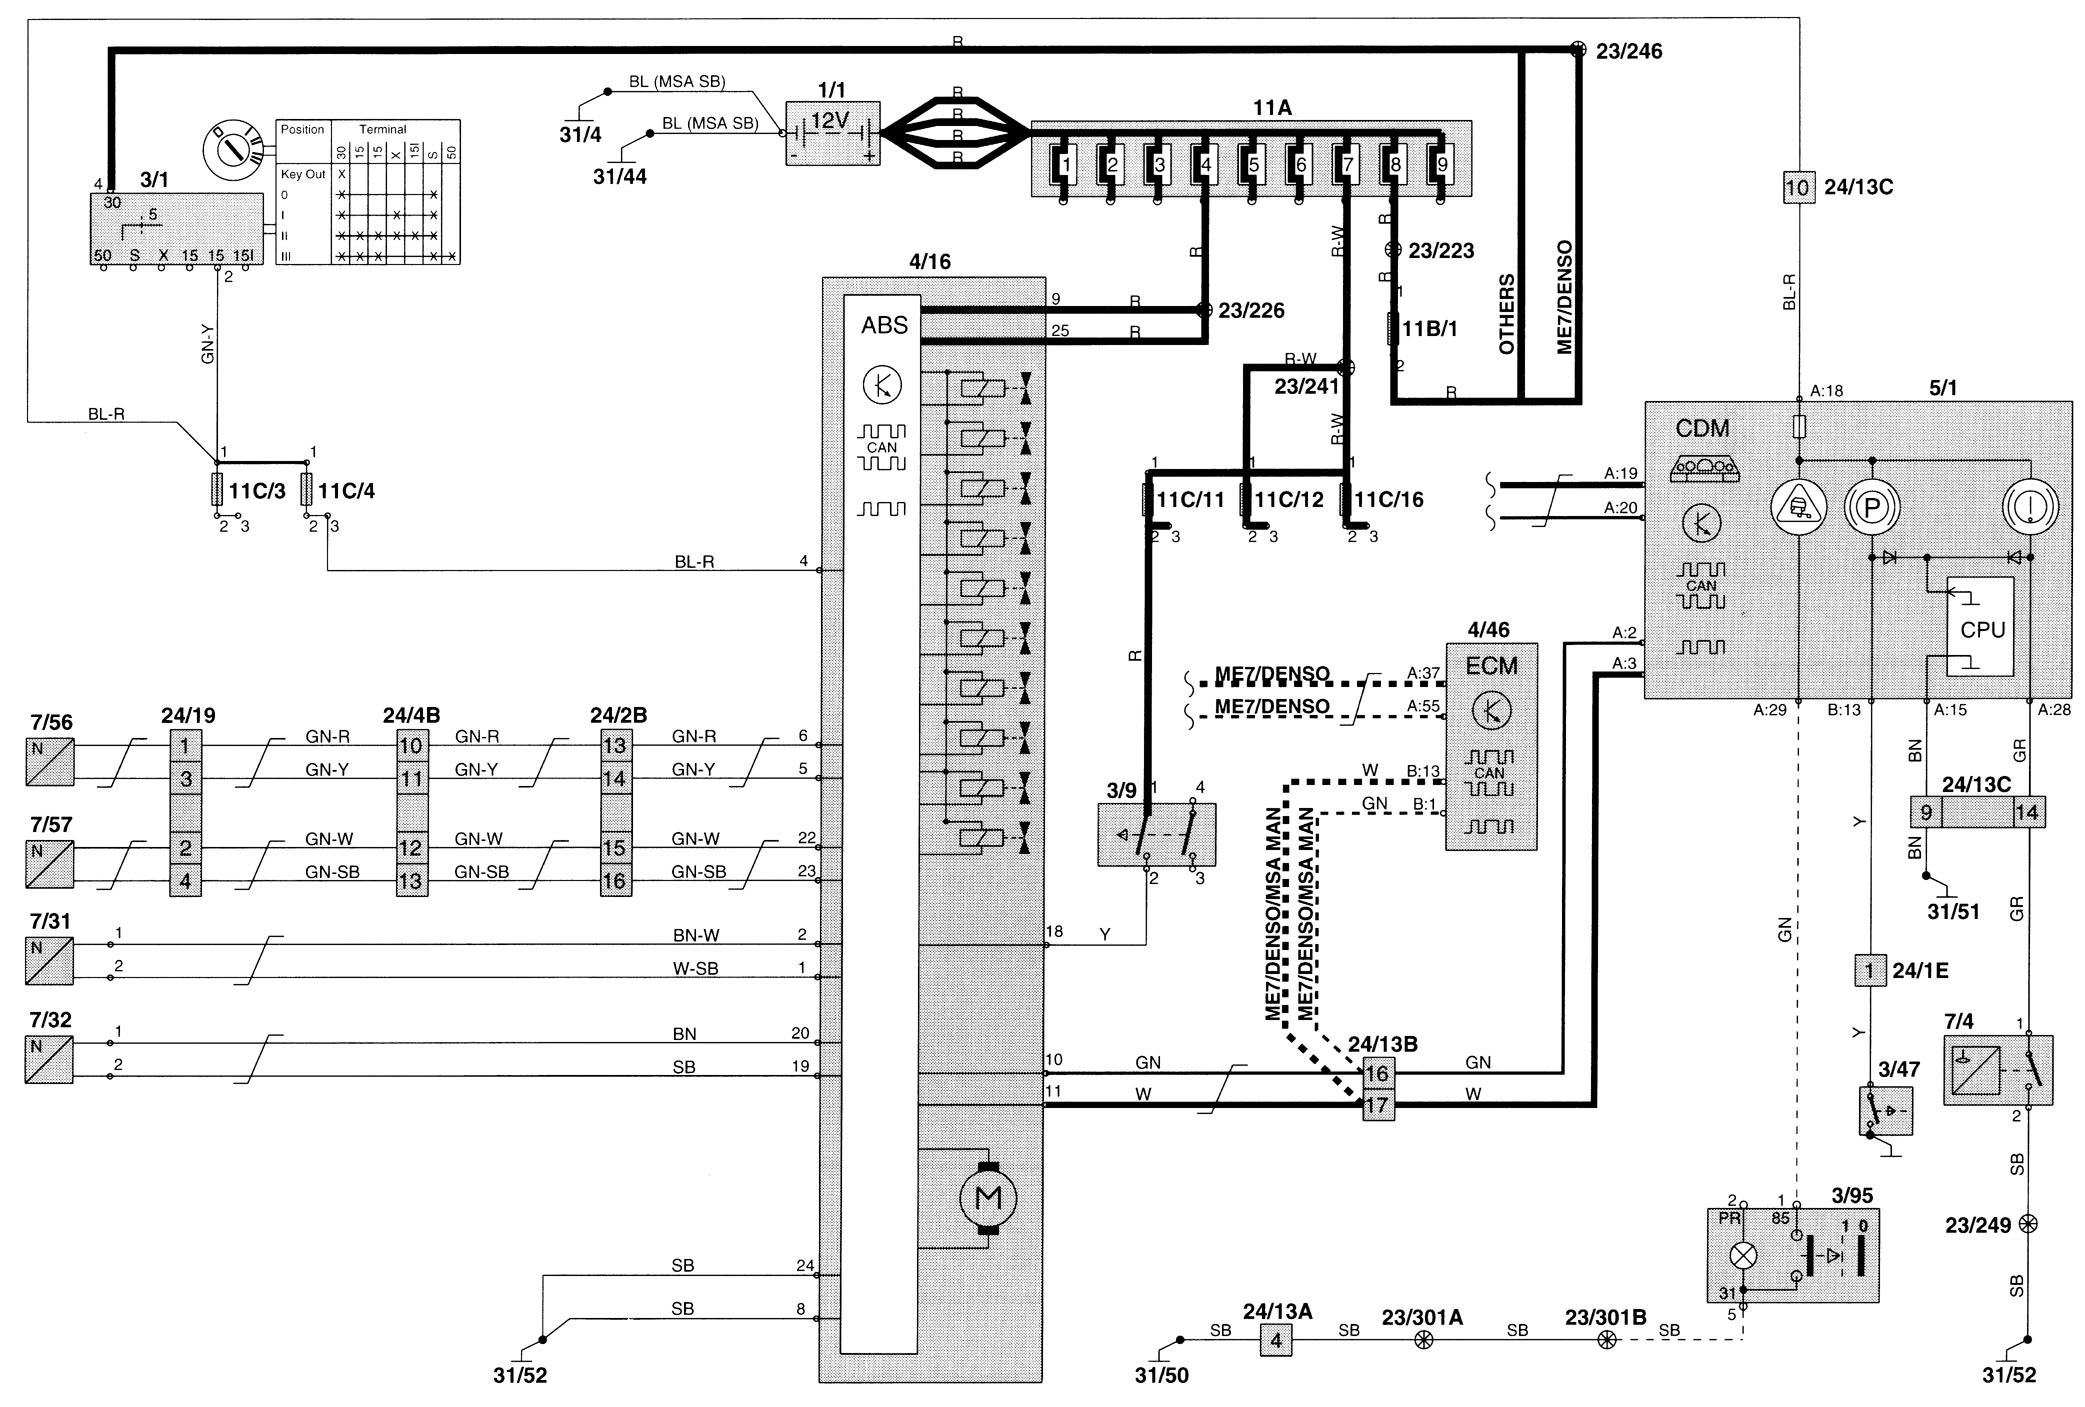 1999 D12 Wiring Schematic : 25 Wiring Diagram Images